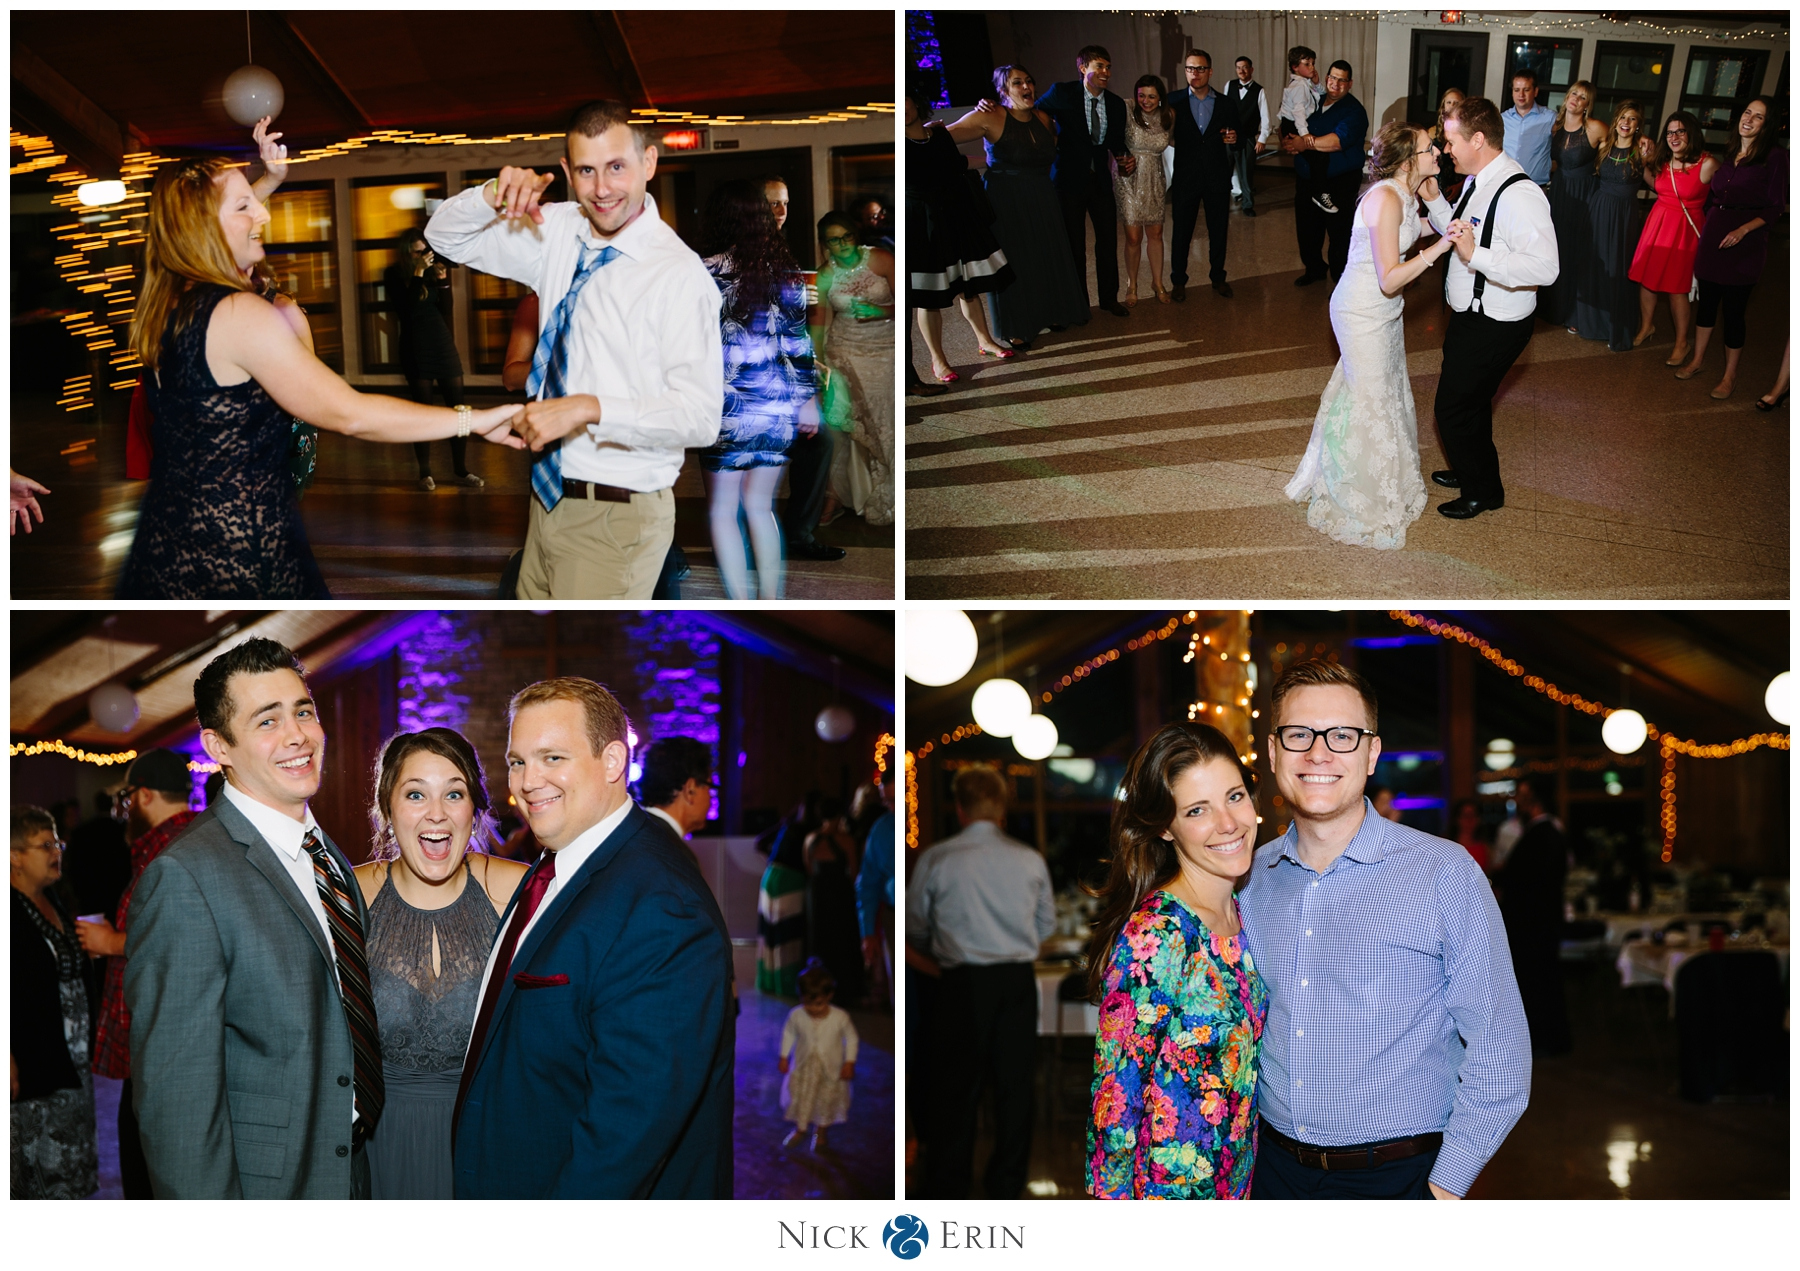 donner_photography_iowa-wedding_katie-chris_0061